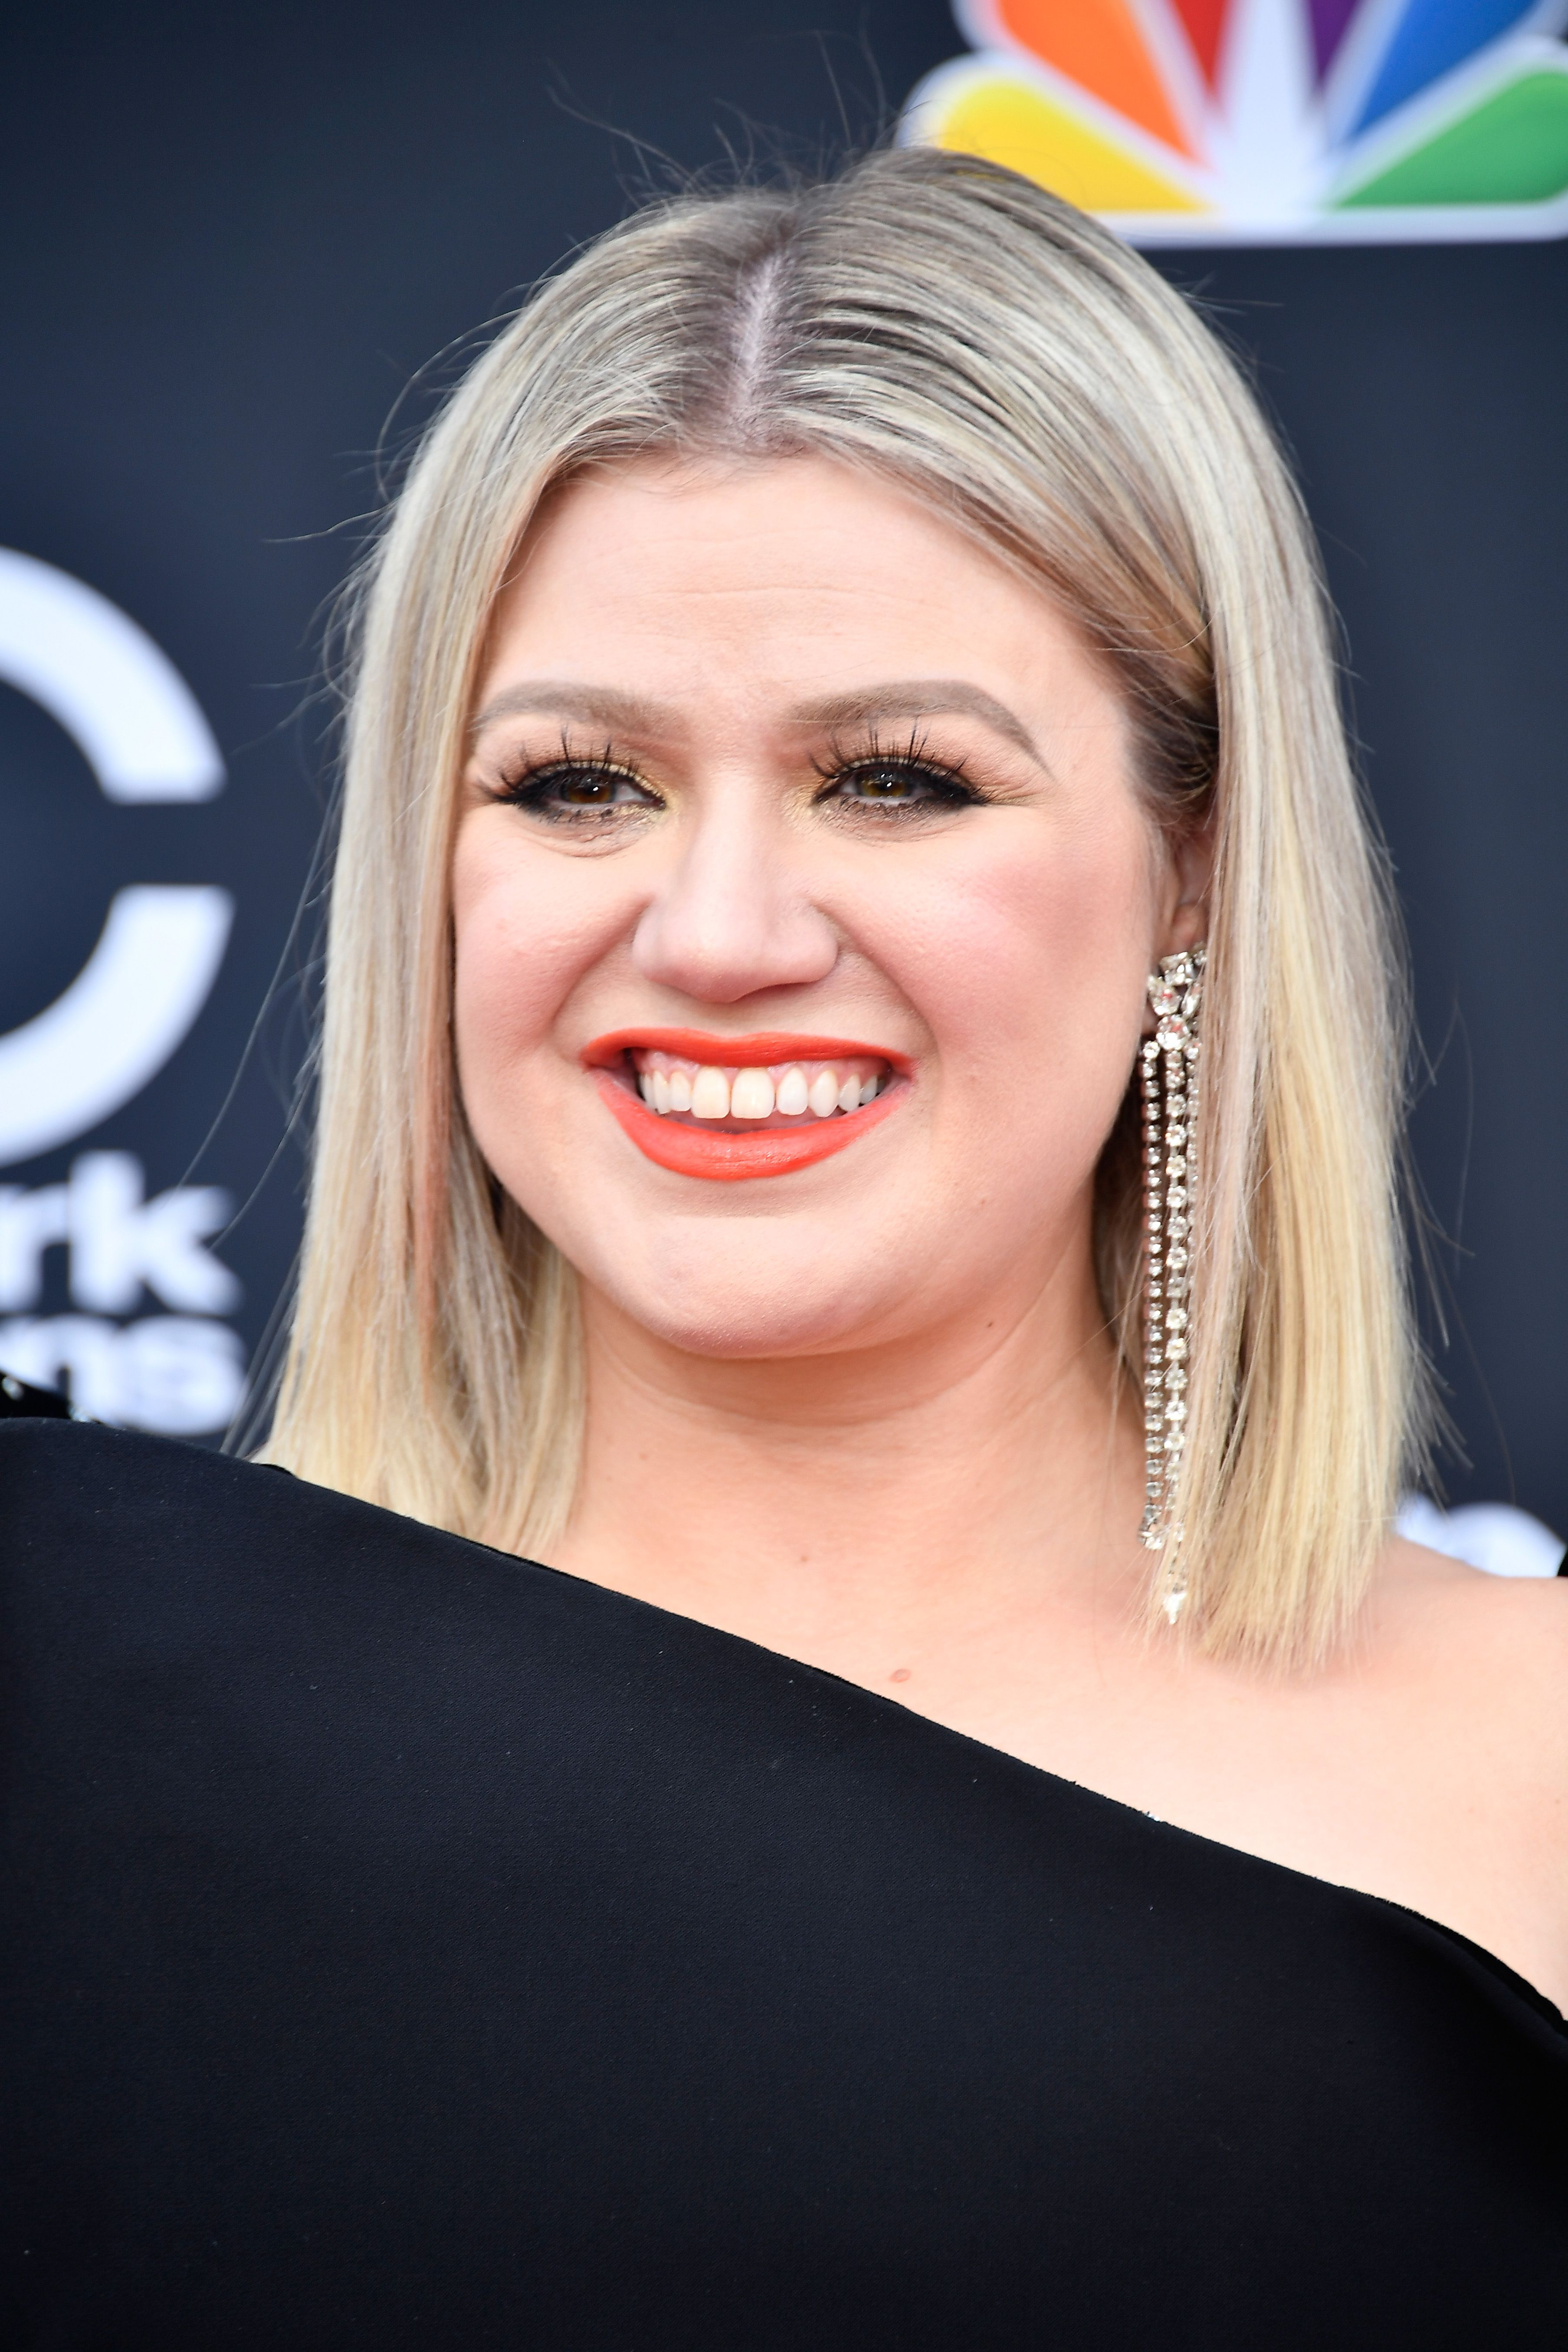 Kelly Clarkson on the red carpet / Getty Images